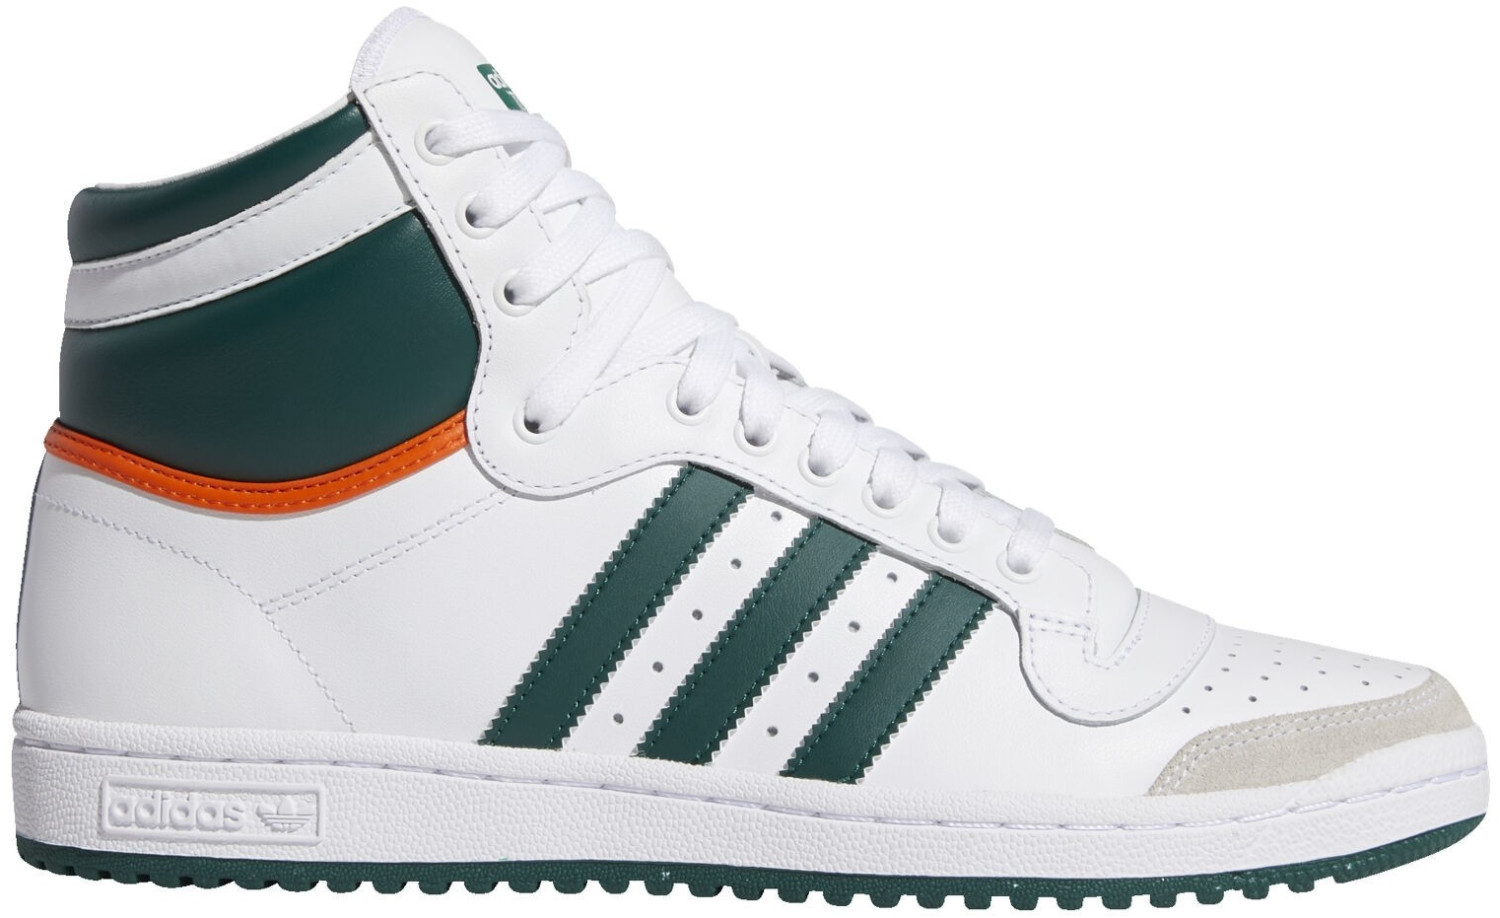 Adidas Top Ten Hi I - Green